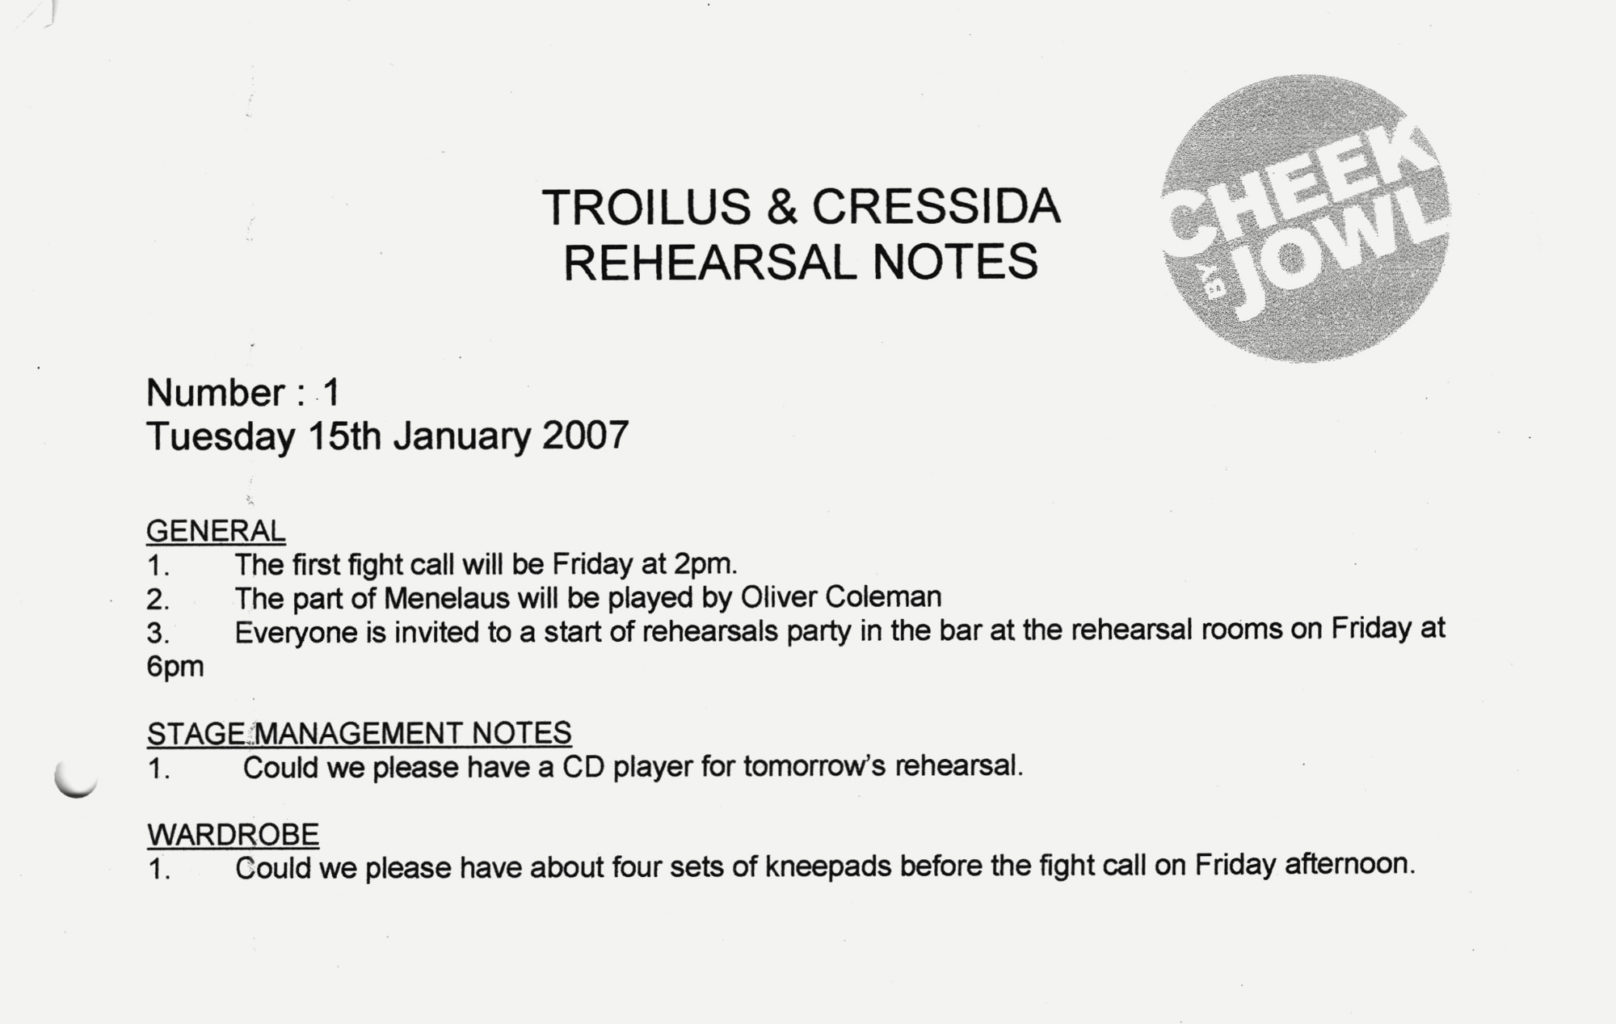 Rehearsal notes from the 2008 production of Troilus and Cressida